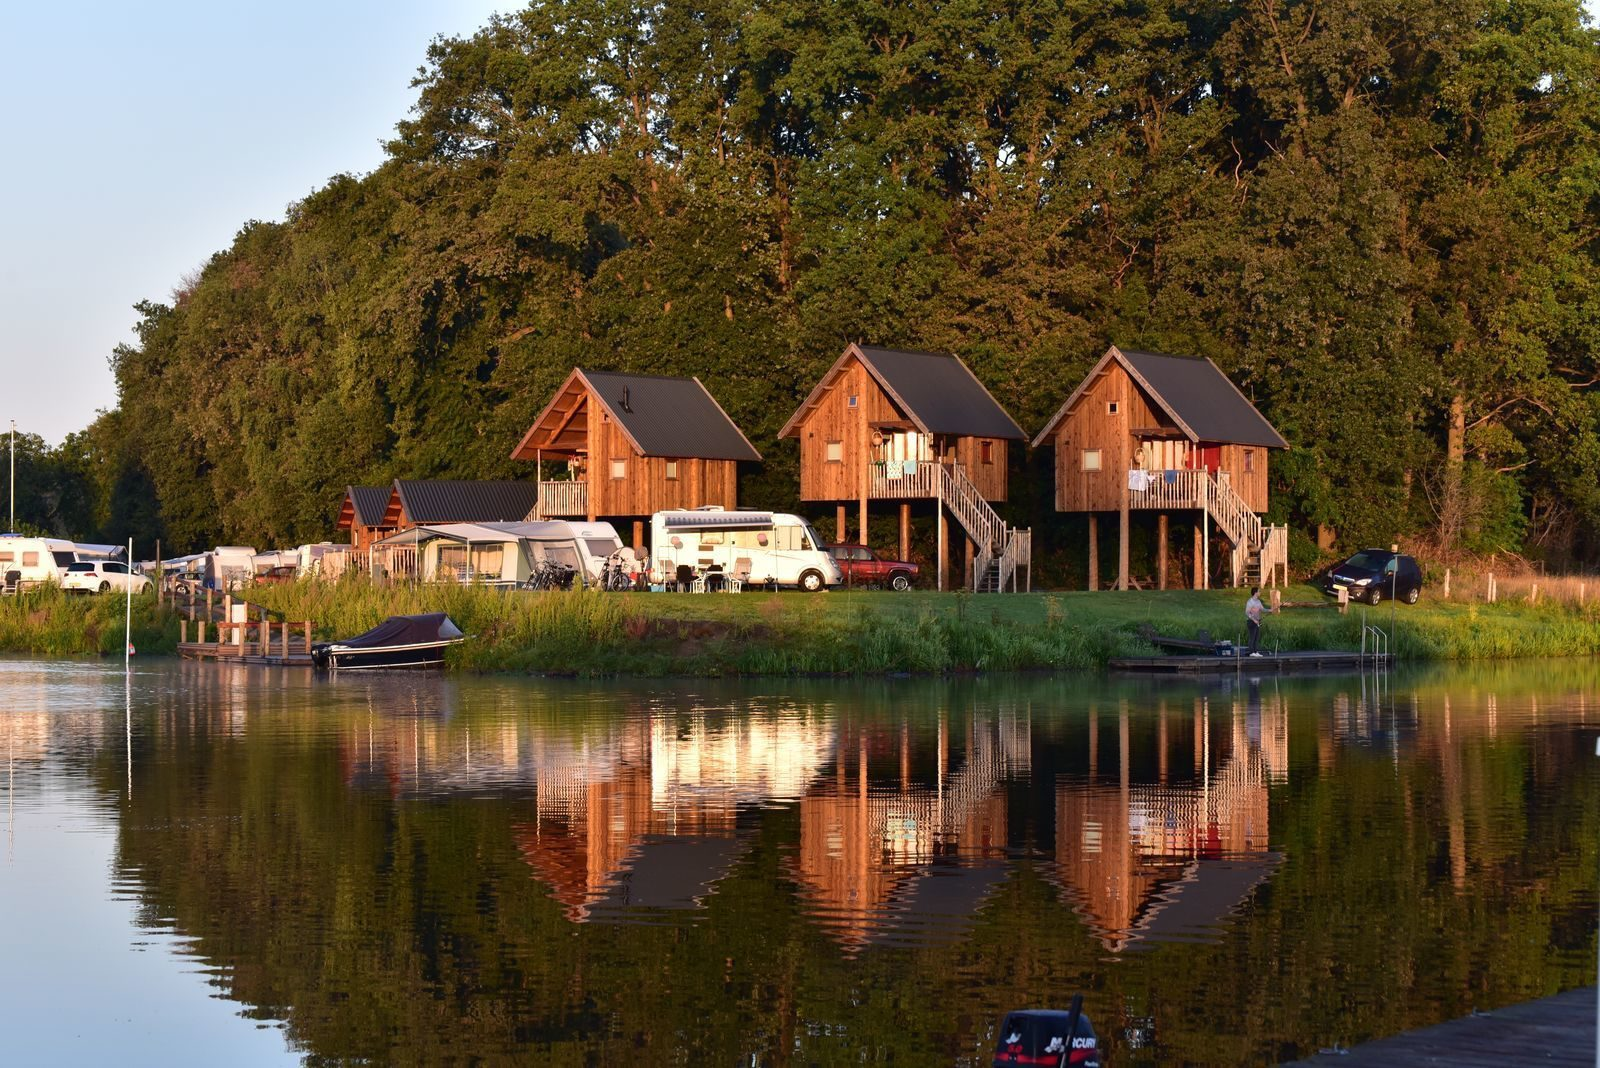 Accommodations near the Vecht river